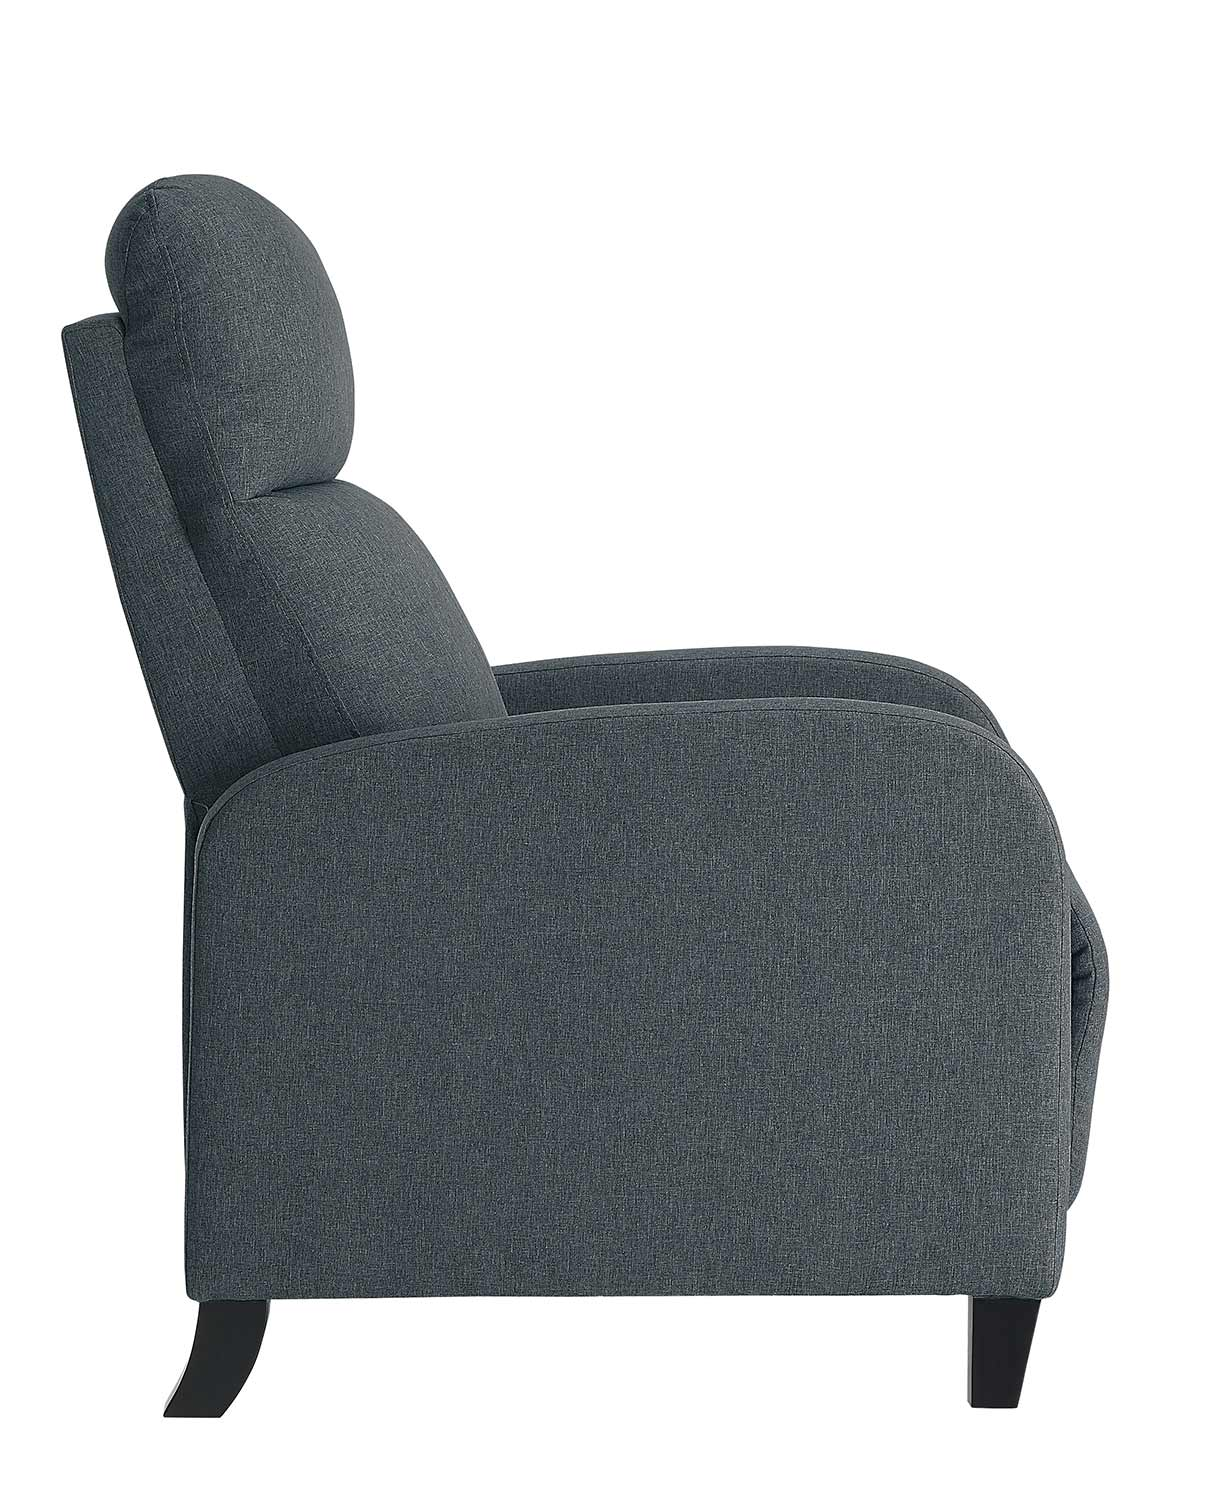 Homelegance Antrim Push Back Reclining Chair - Gray